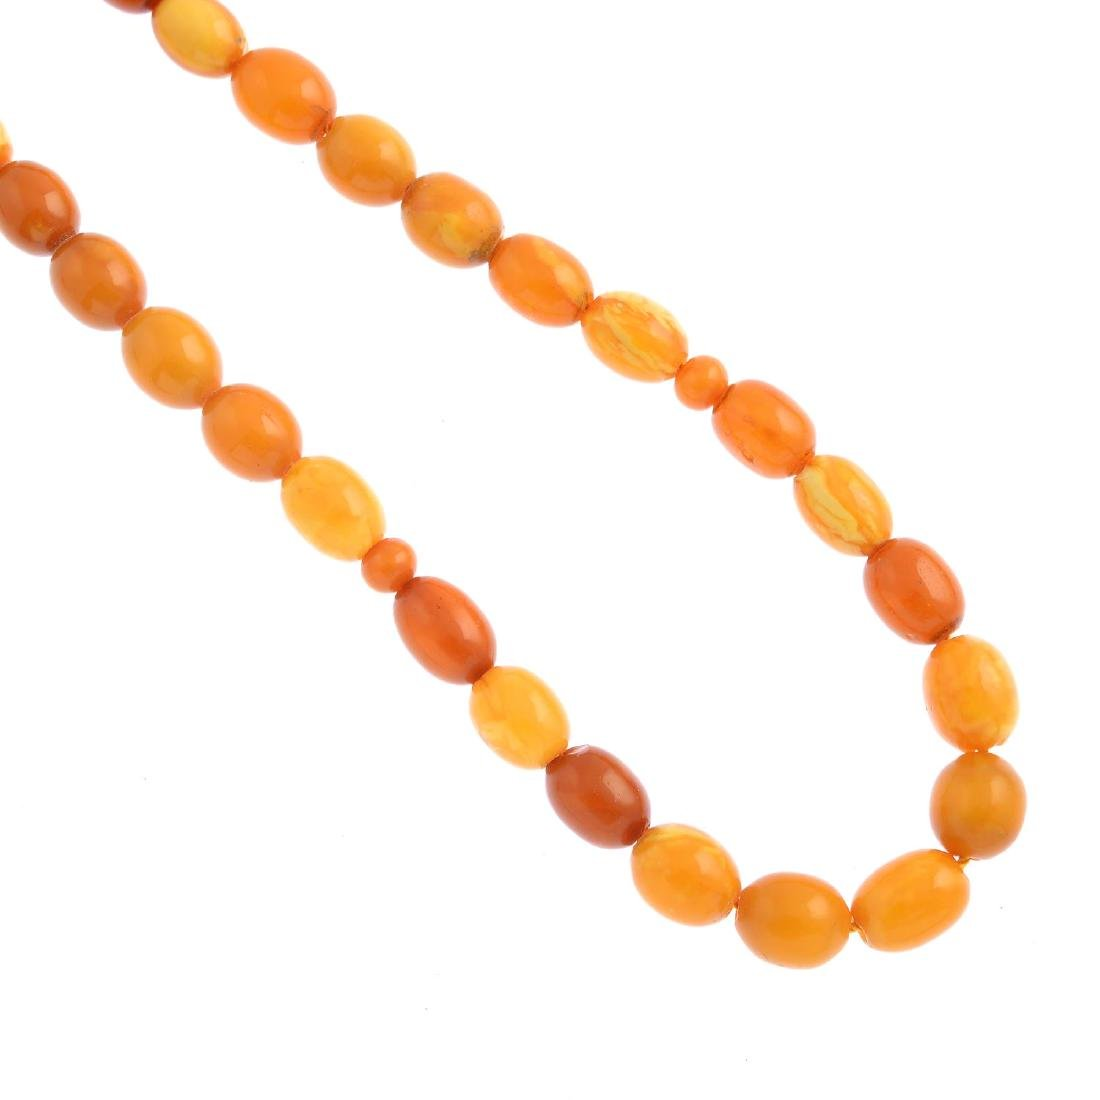 A natural Baltic amber bead strand. Comprising